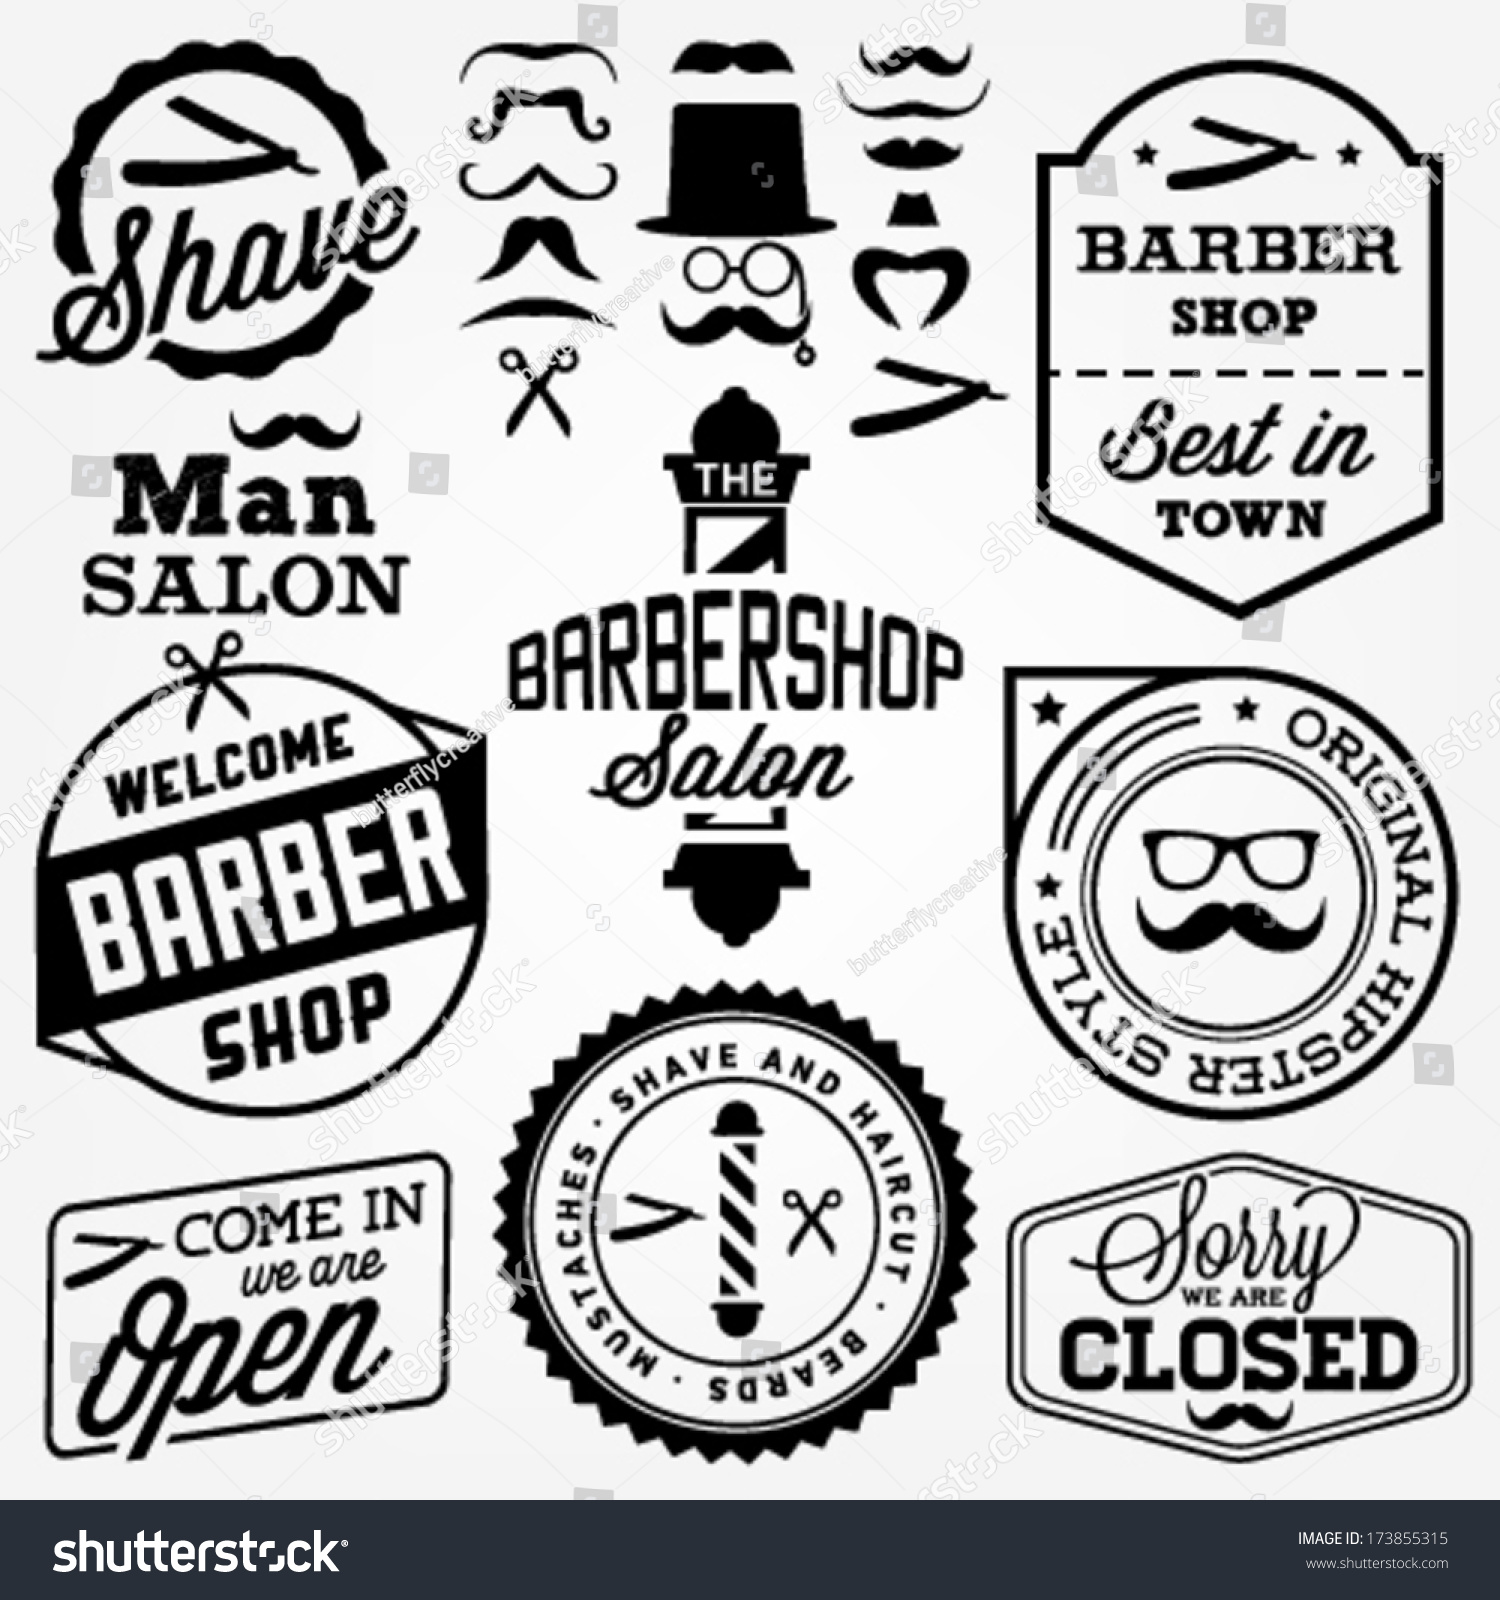 Antique barber shop sign - Collection Of Vintage Barber Shop Design Elements